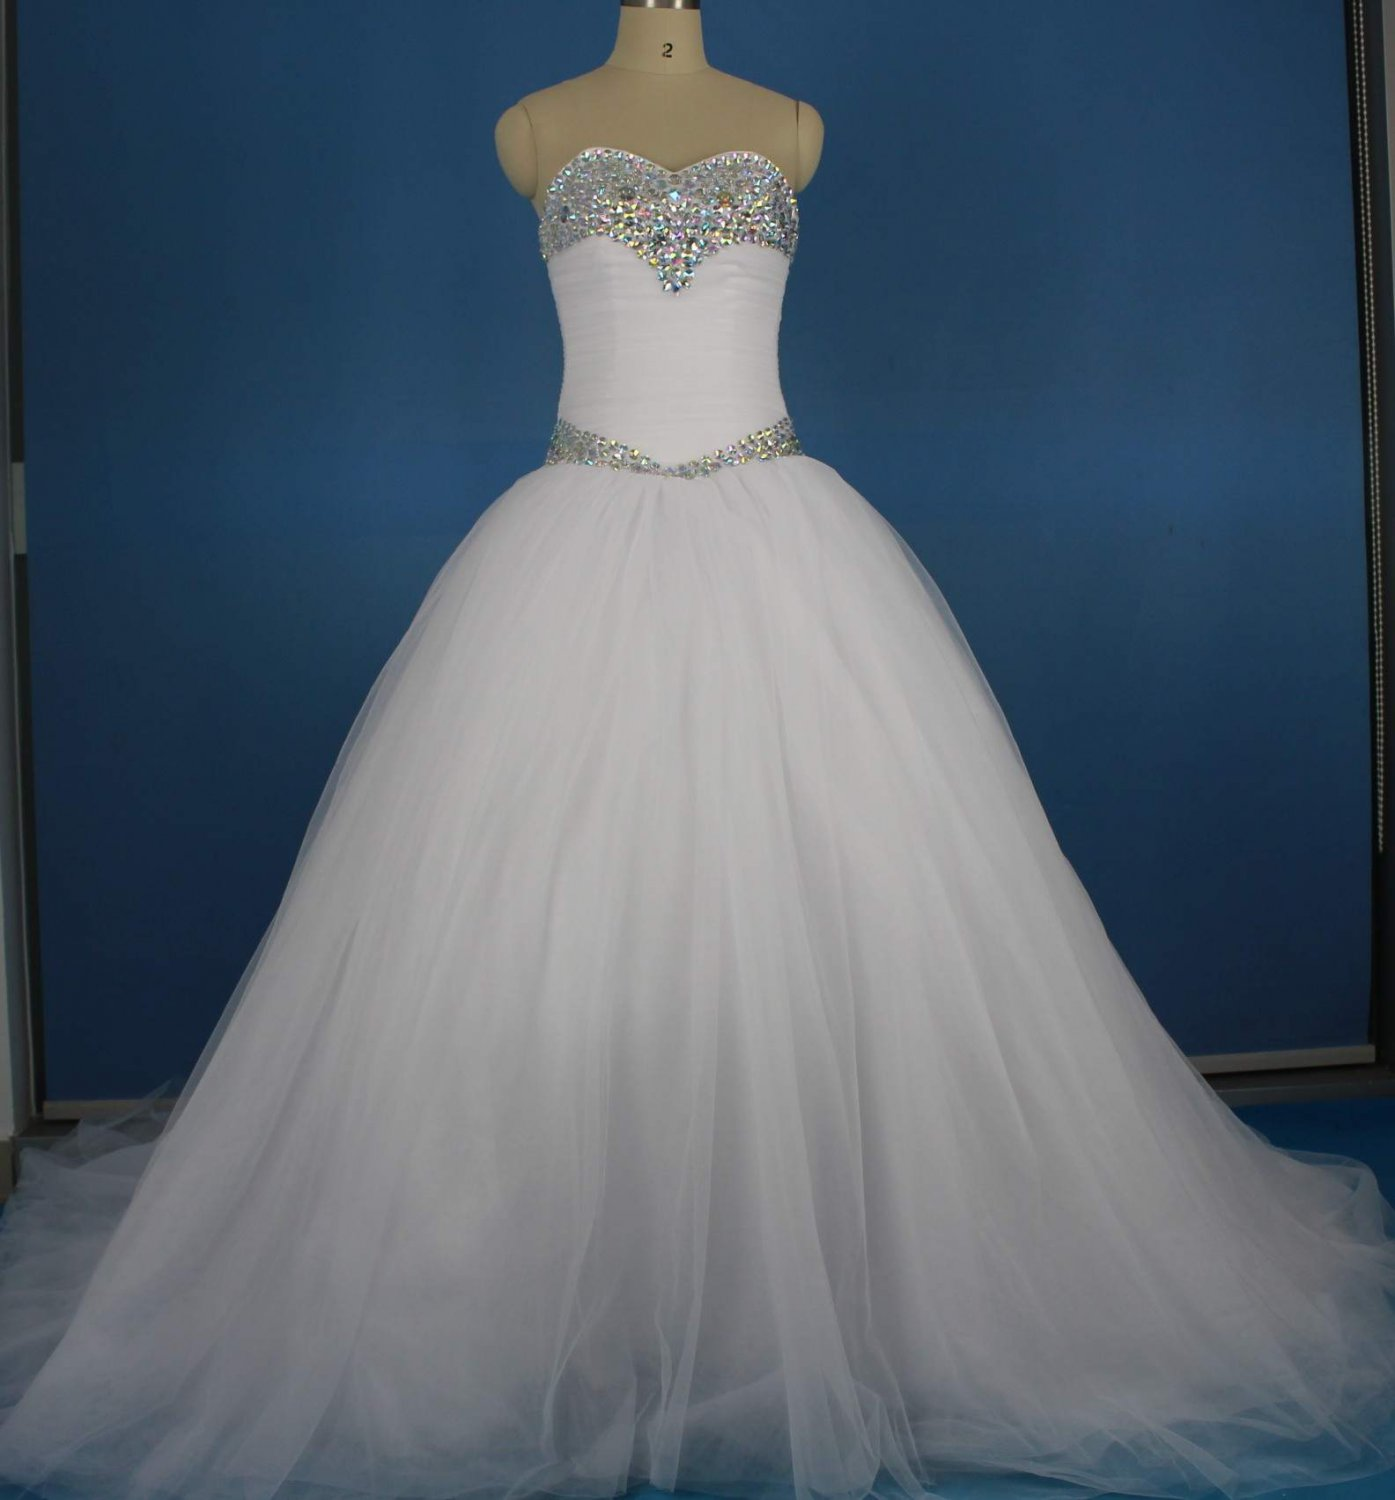 Layered Tulle Bridal Ball Gown Colorful Crystal Jewelry